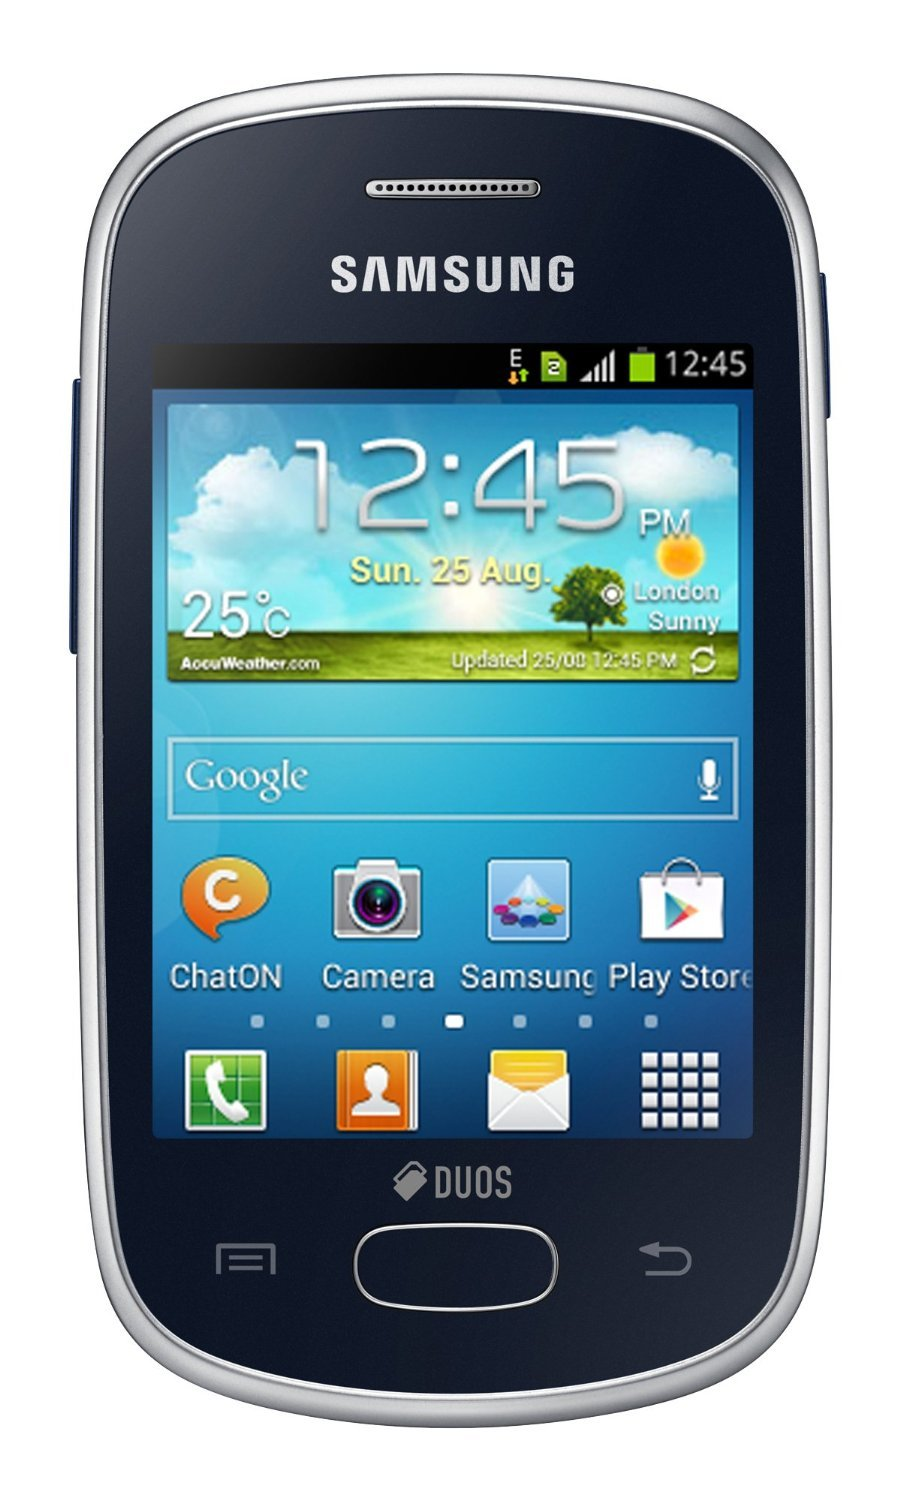 Samsung-Galaxy-Star-S5282-4GB-2MP-Jelly-Bean-Dual-Sim-Factory-Unlocked-World-Mobile-Phone-Black